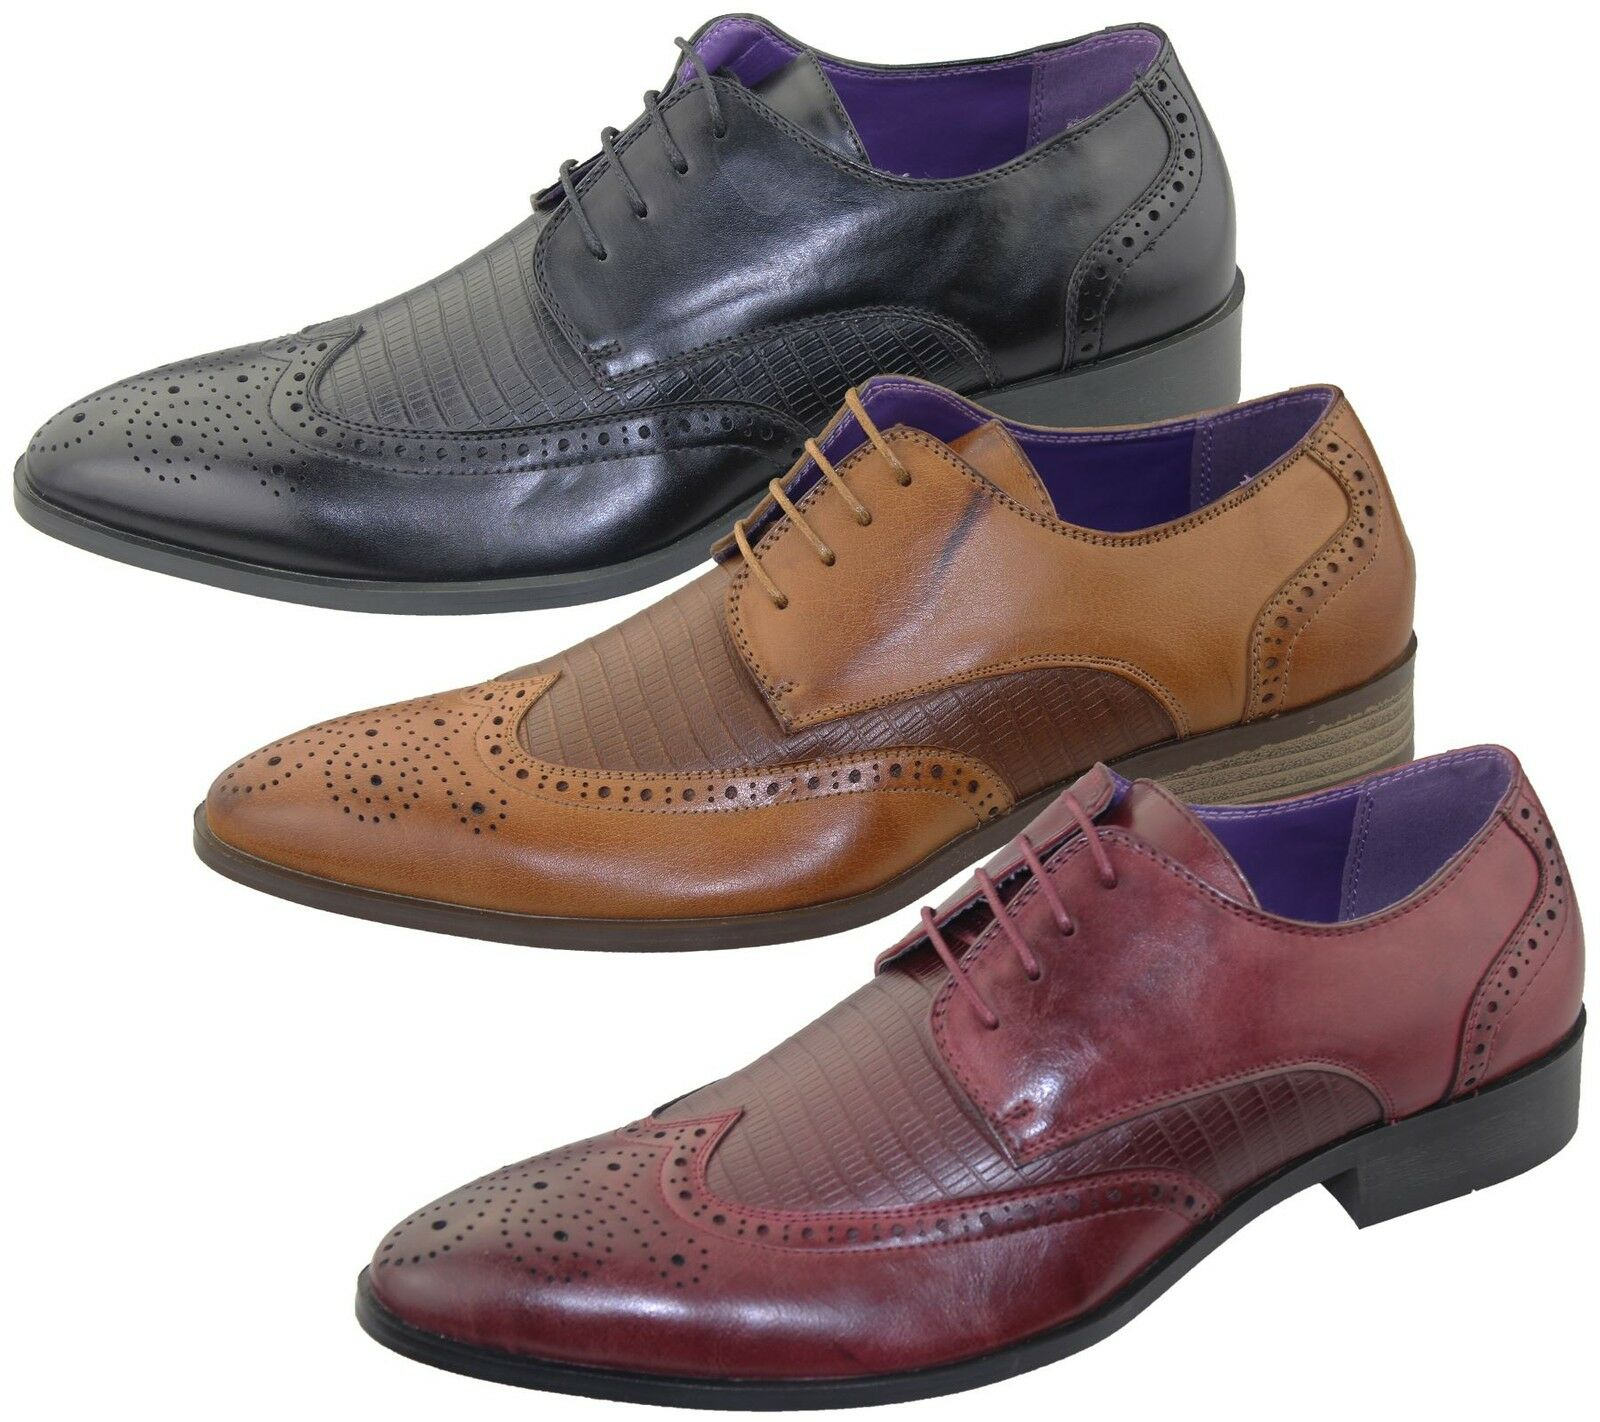 Man/Woman Mens Brogue Shoes Office Wedding Shoes Casual Formal Smart Dress Shoes Wedding New Size Exquisite (middle) workmanship a good reputation in the world Lightweight shoes GW403 c8f39f